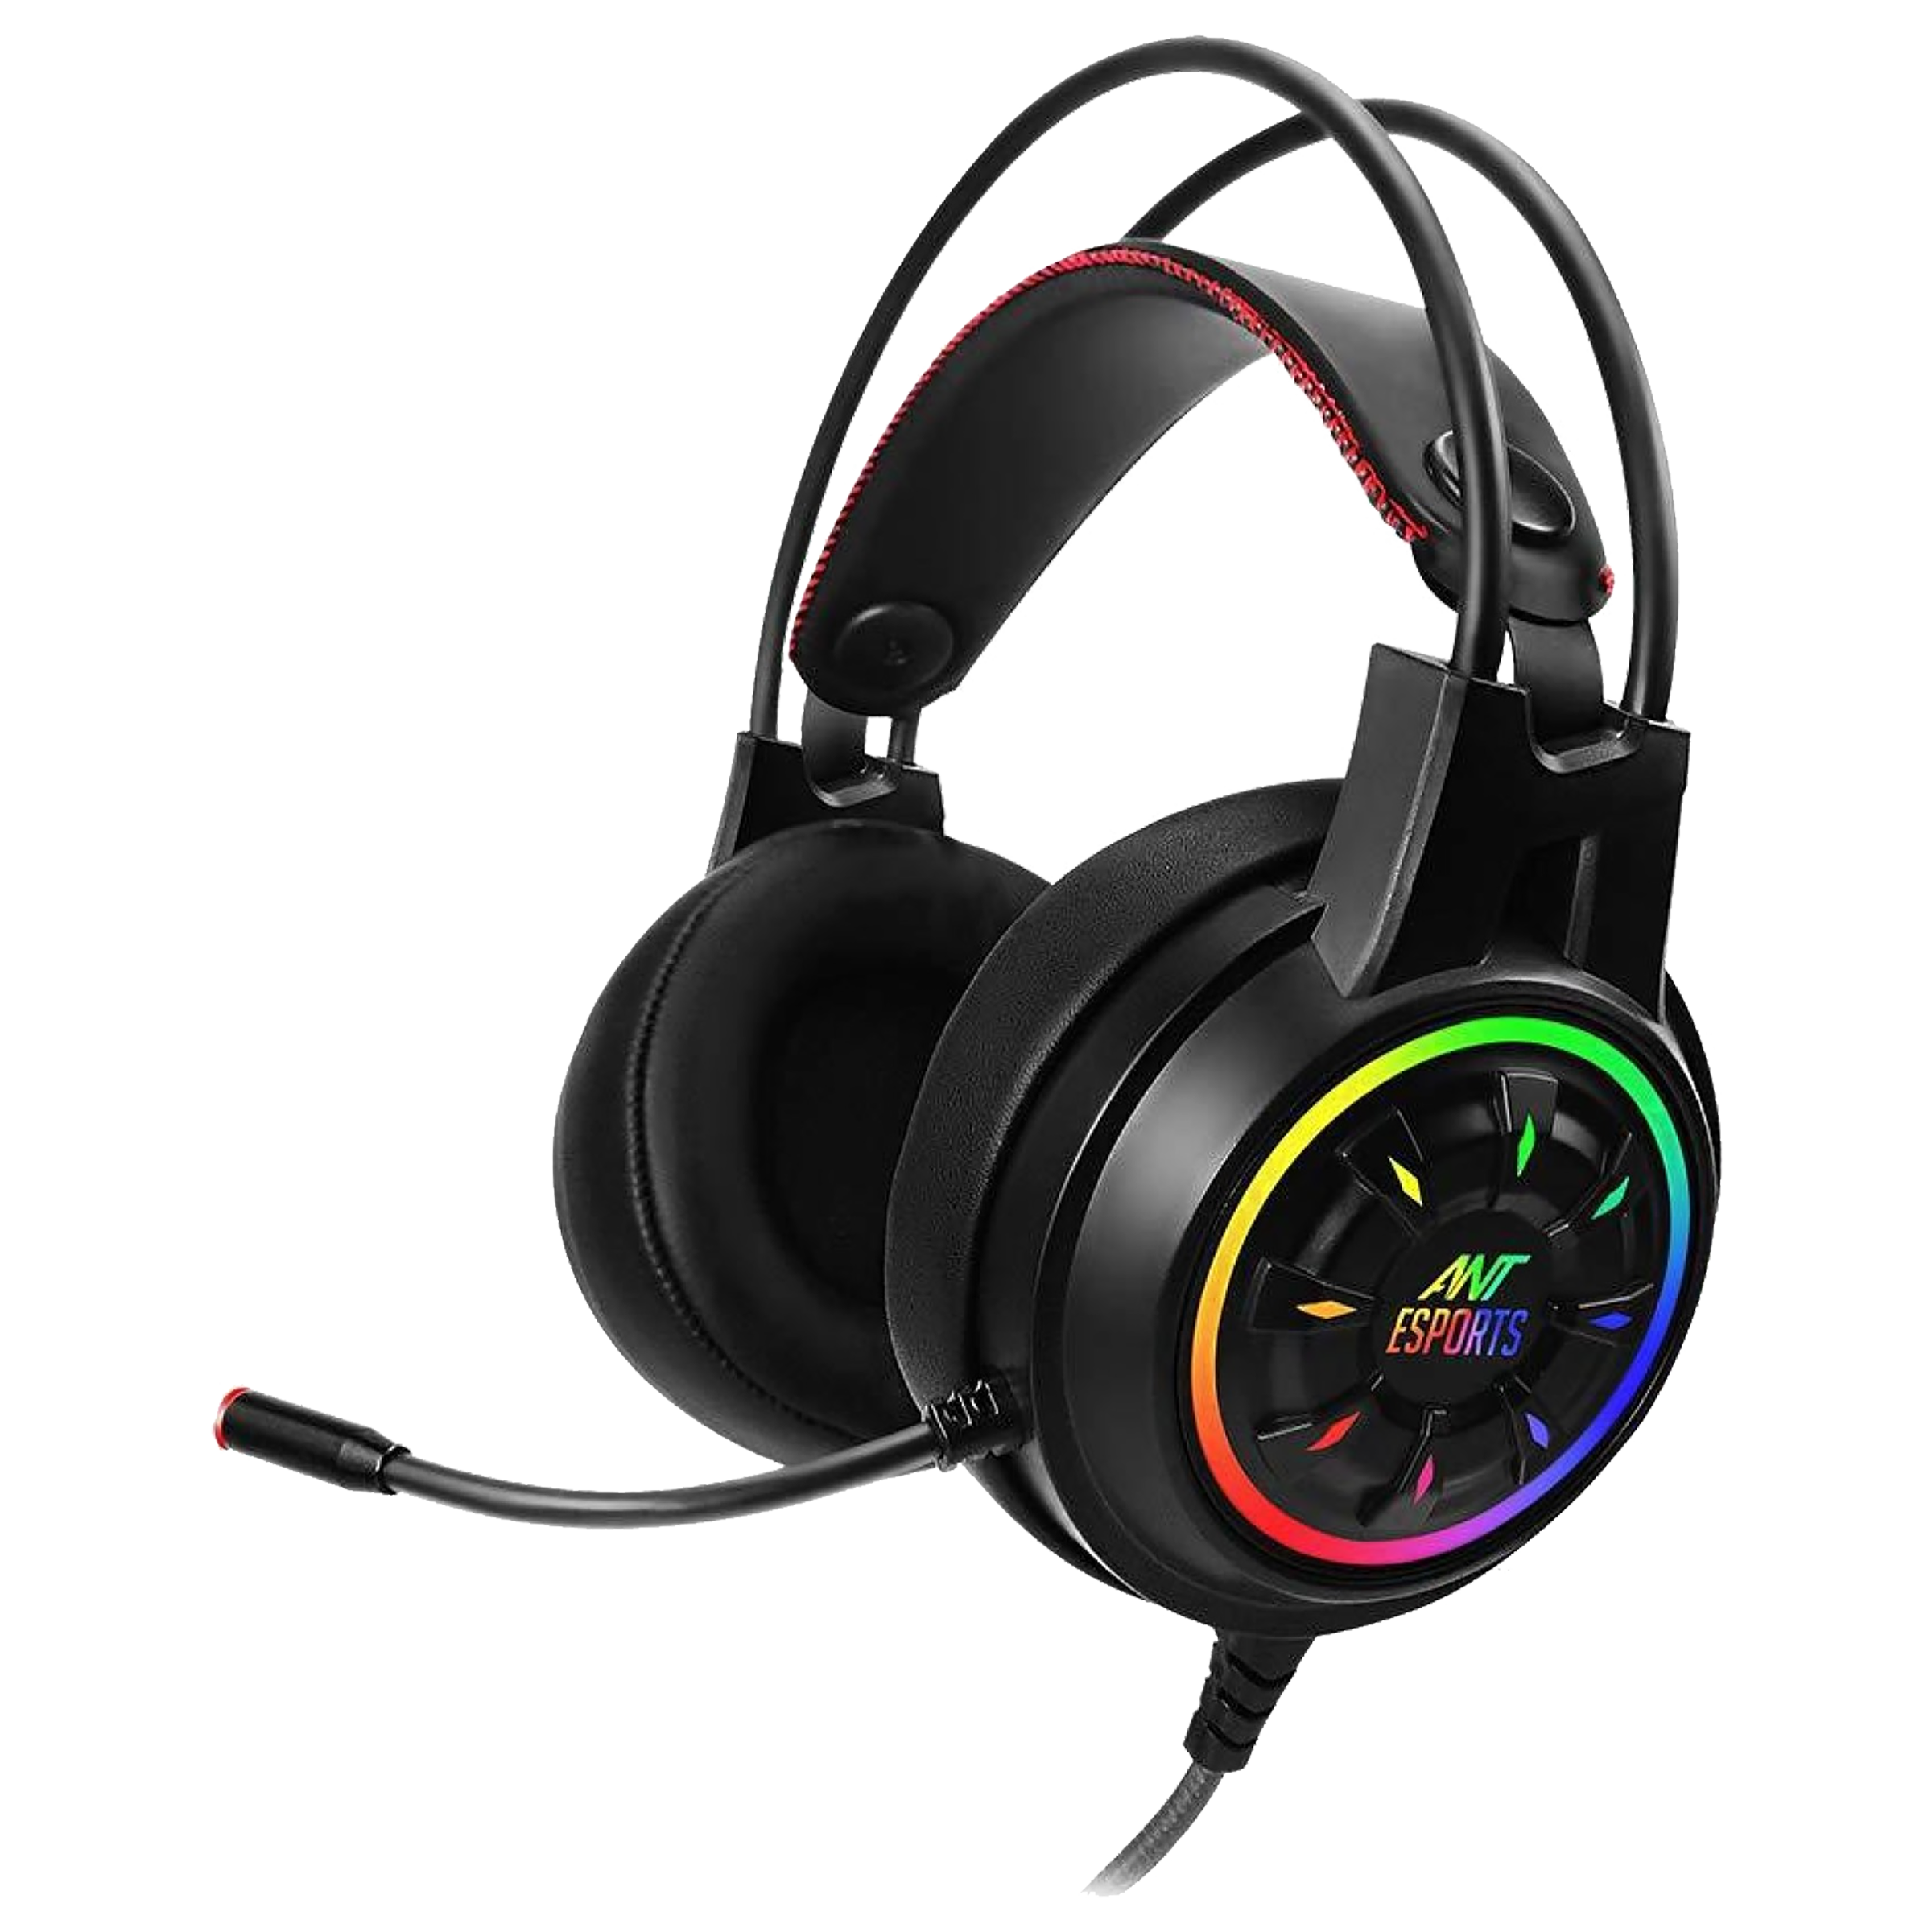 Ant Esports Over-Ear Active Noise Cancellation Wired Headset with Mic (HD RGB LED, H707, Black)_1